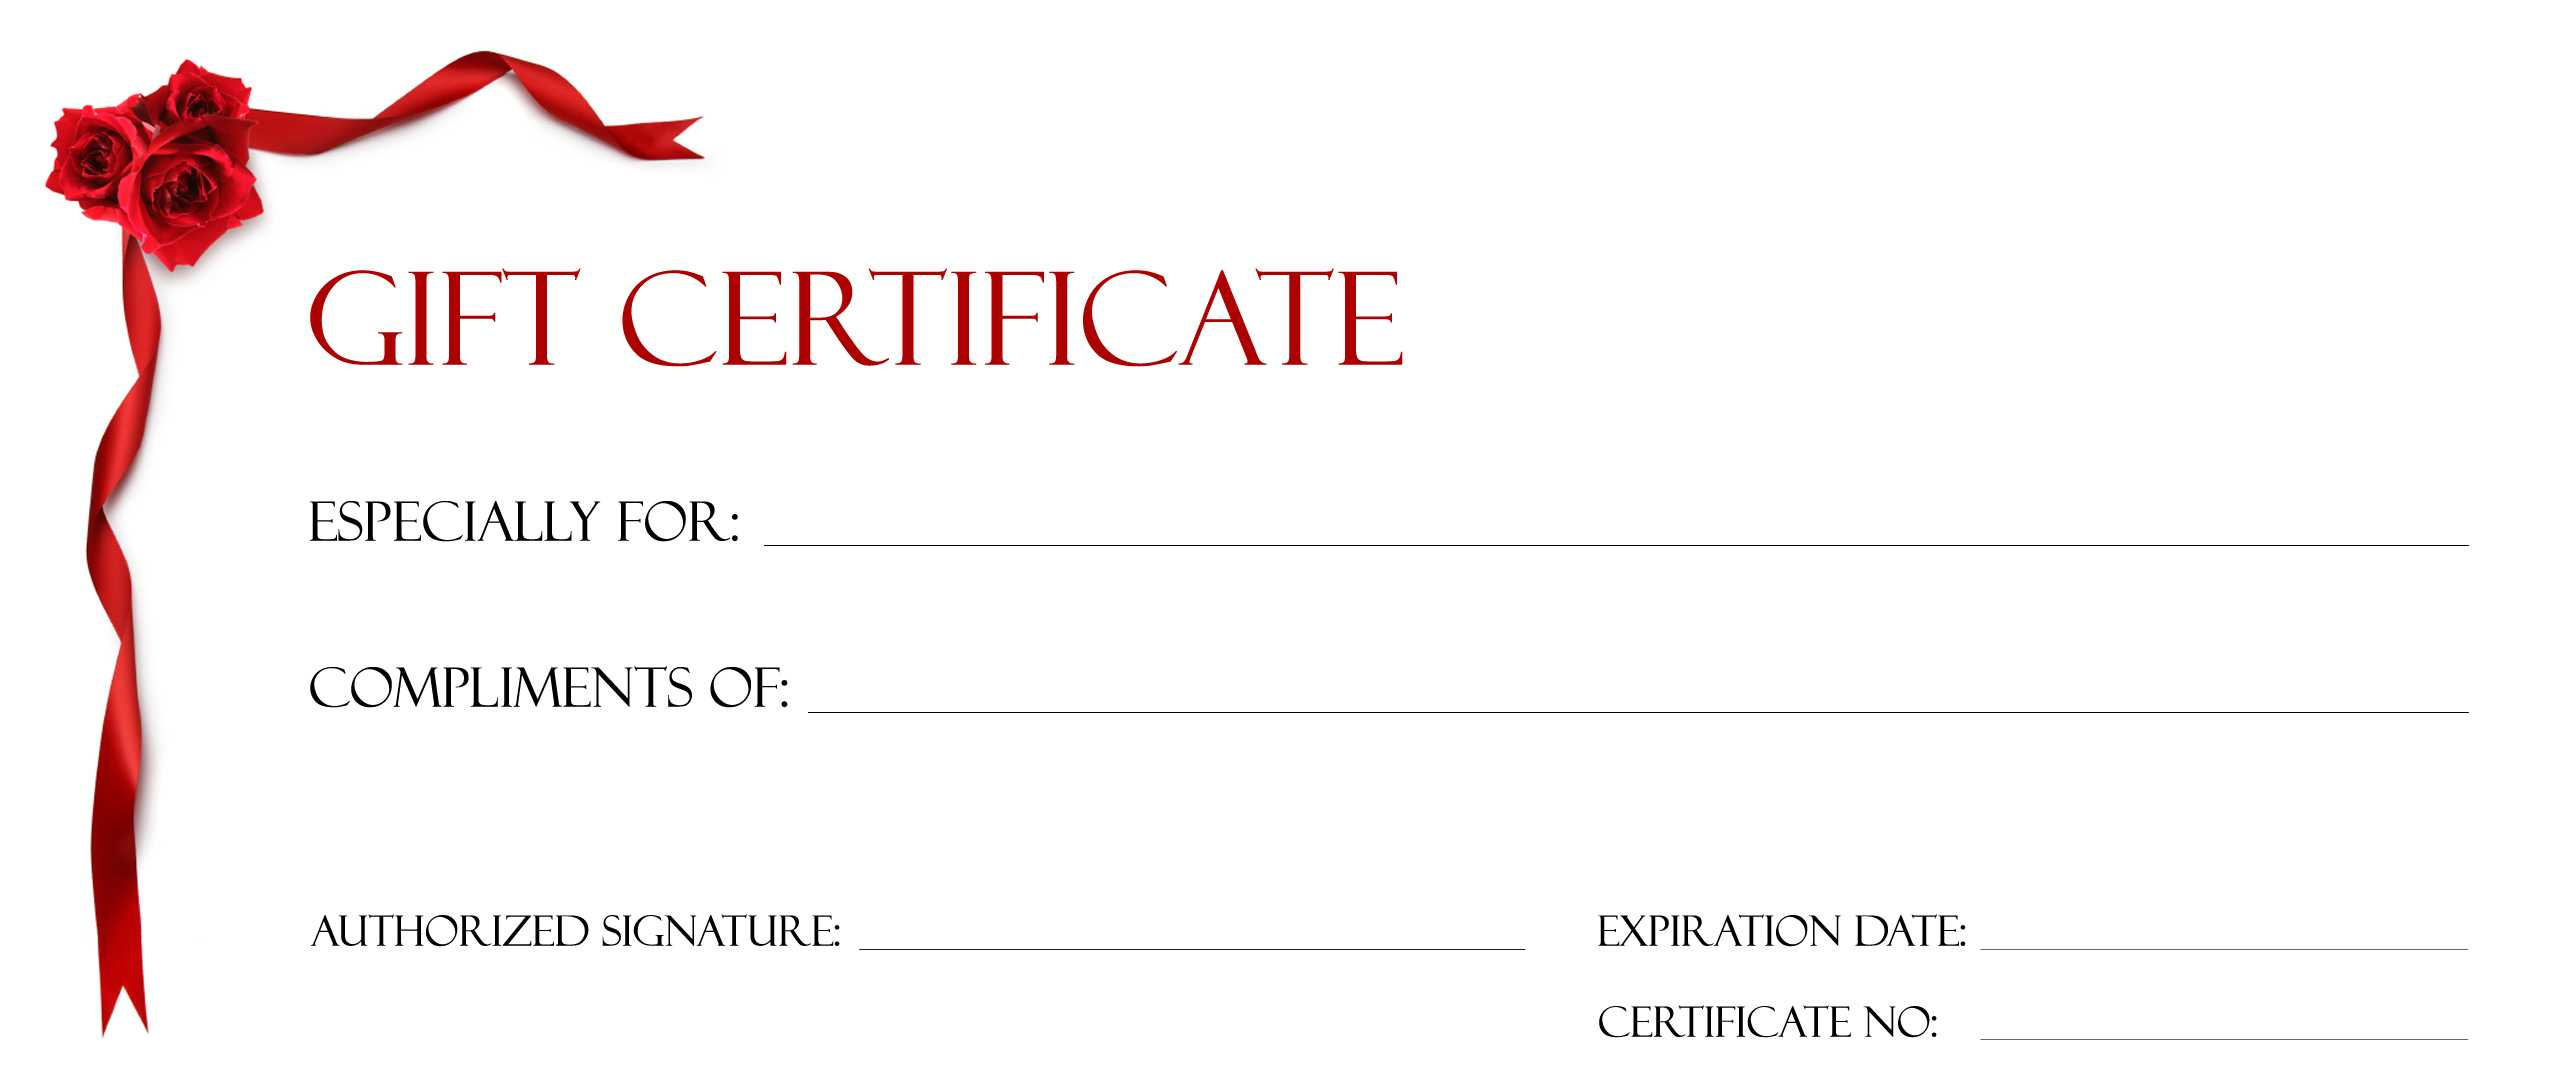 Gift Certificate Template Microsoft Publisher With Regard To Gift Certificate Template Publisher